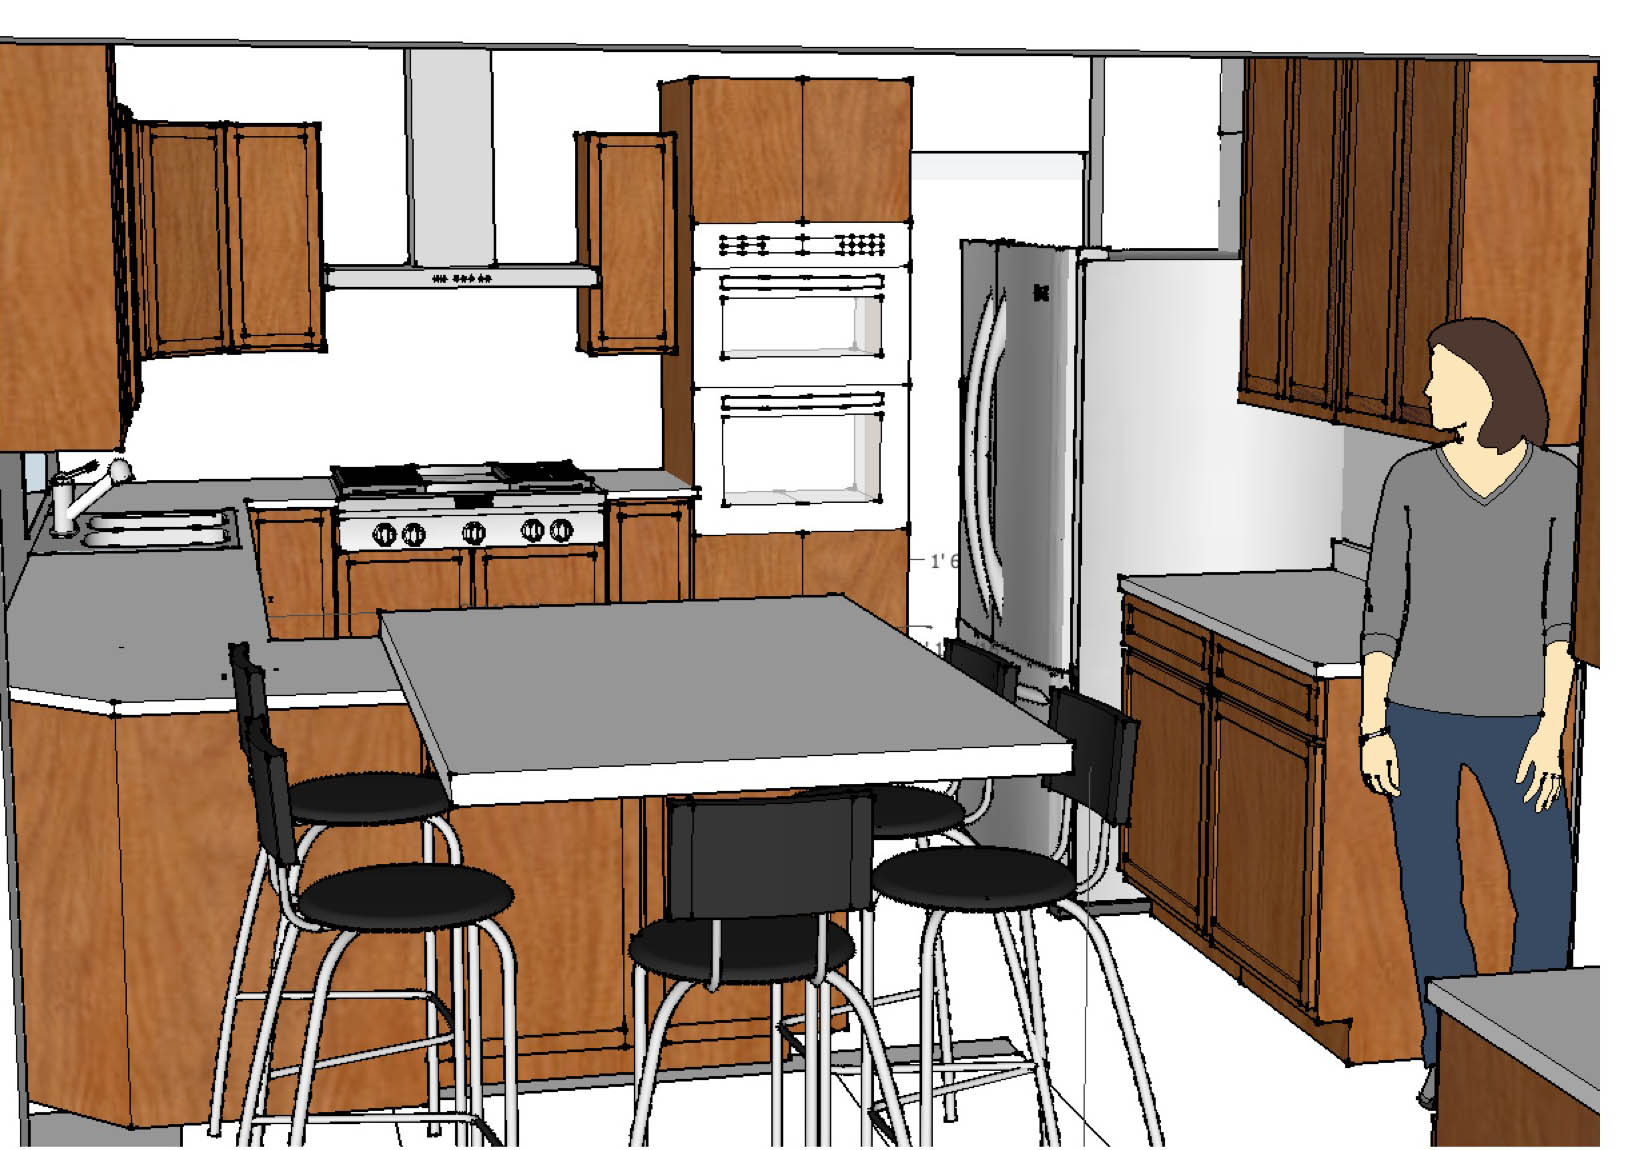 301 moved permanently Kitchen design software google sketchup